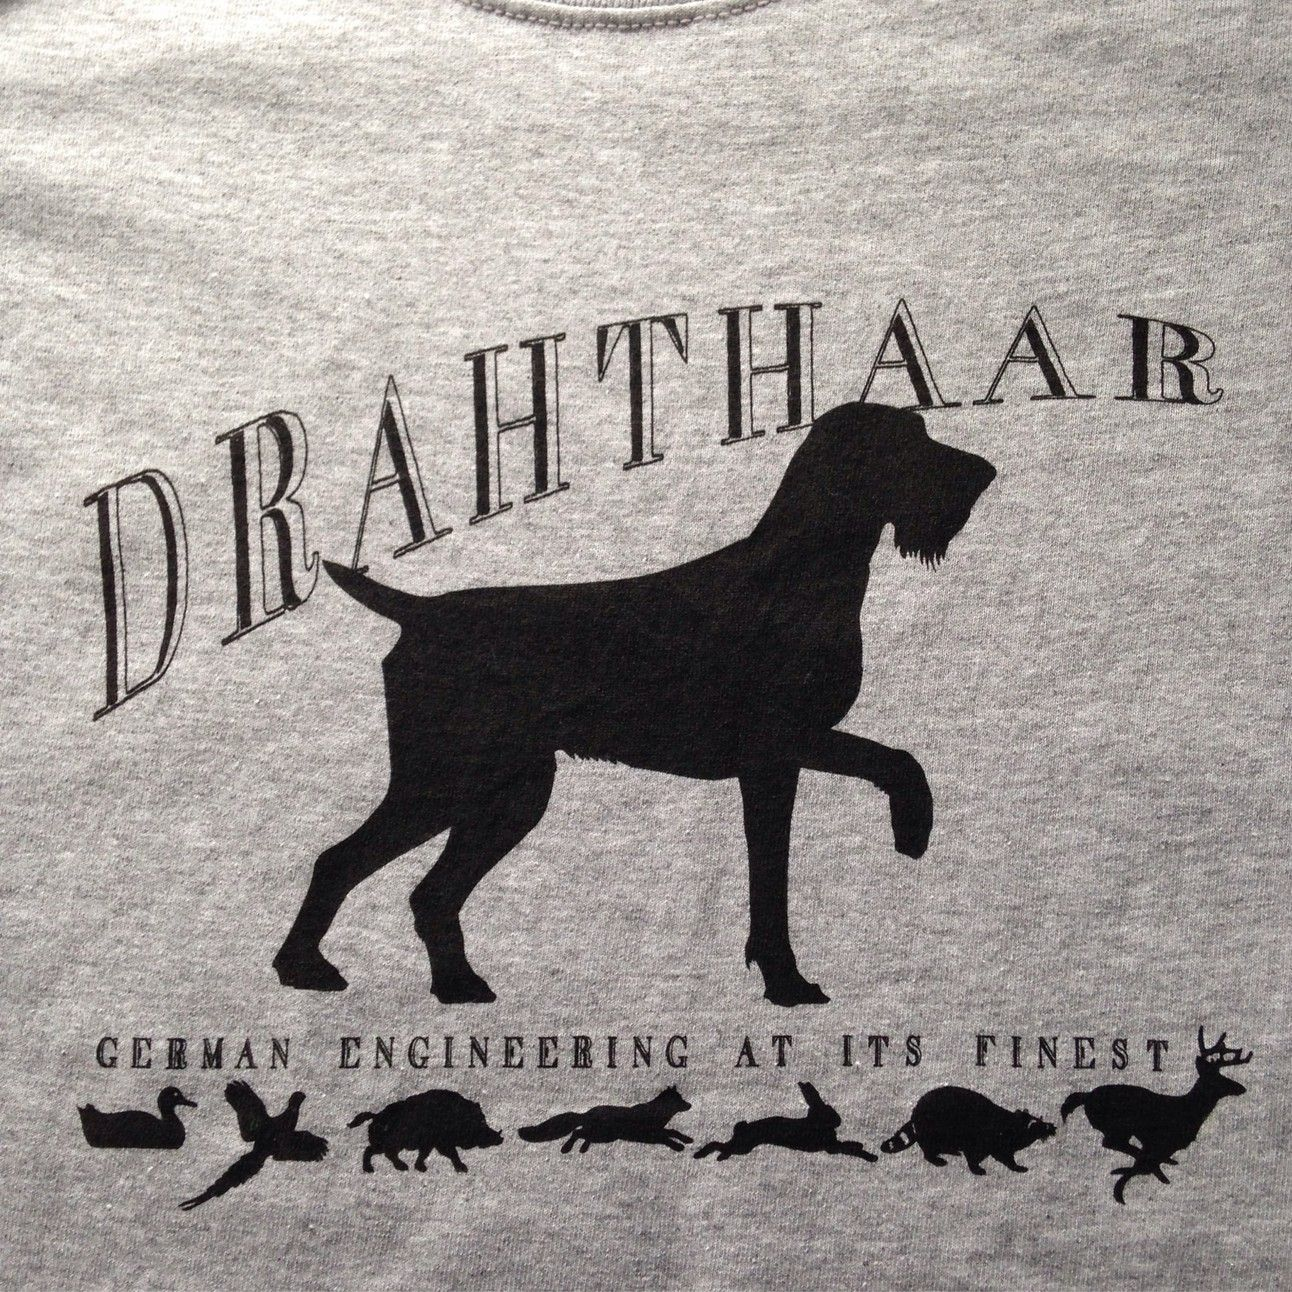 DD stuff | Draht dogs | Pinterest | German, Dog and Pointers